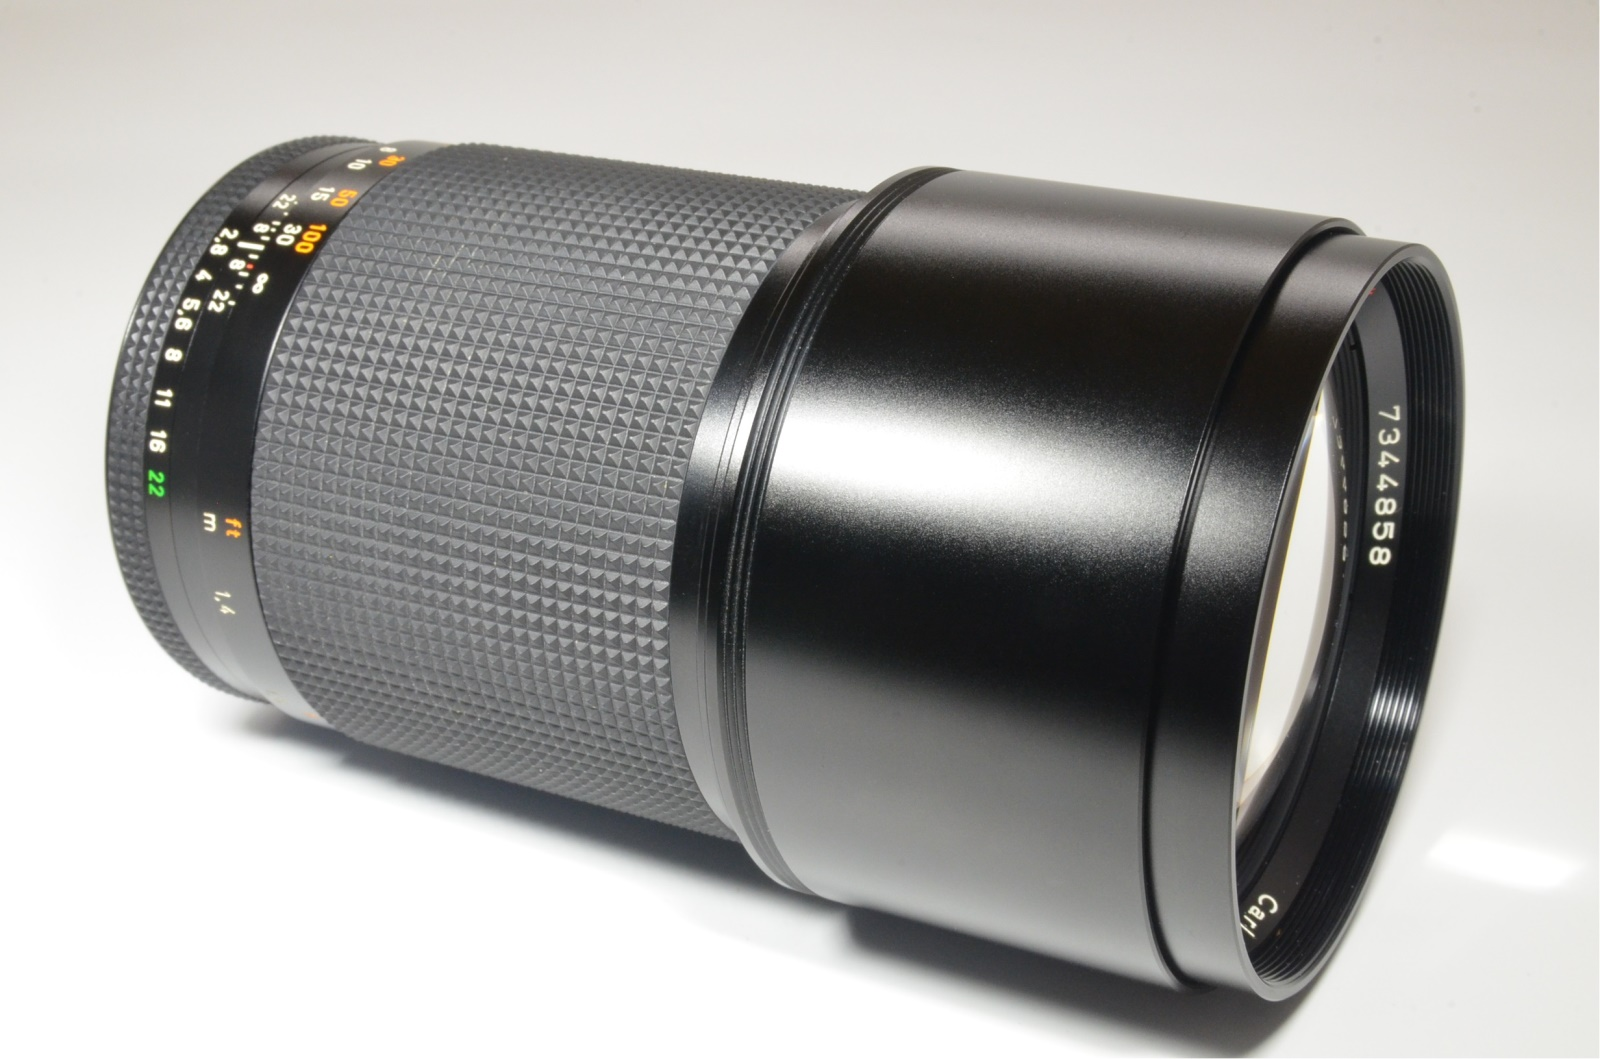 contax carl zeiss sonnar t* 180mm f2.8 mmj made in japan shooting tested